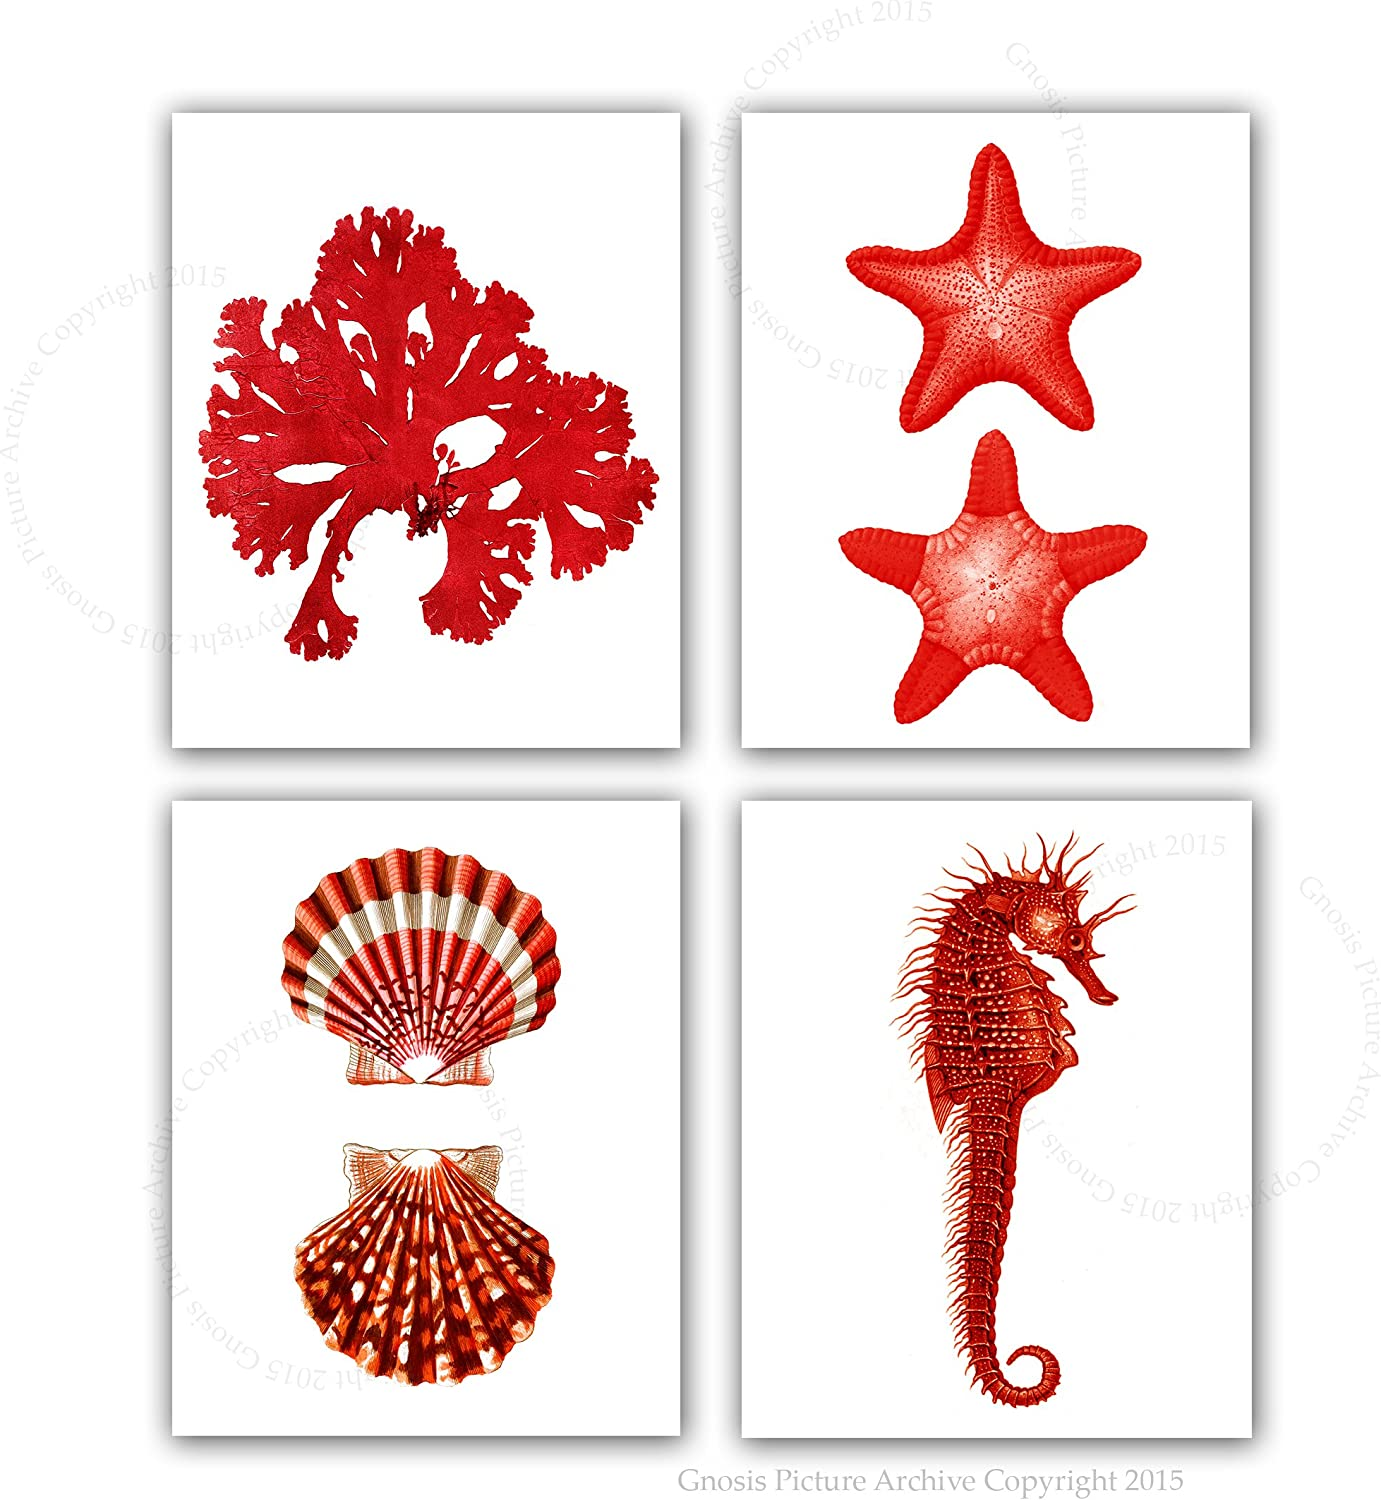 Red Wall Decor Beach Themed Set of 4 Unframed Art Prints Seashells Seahorse Seaweed Starfish Prints